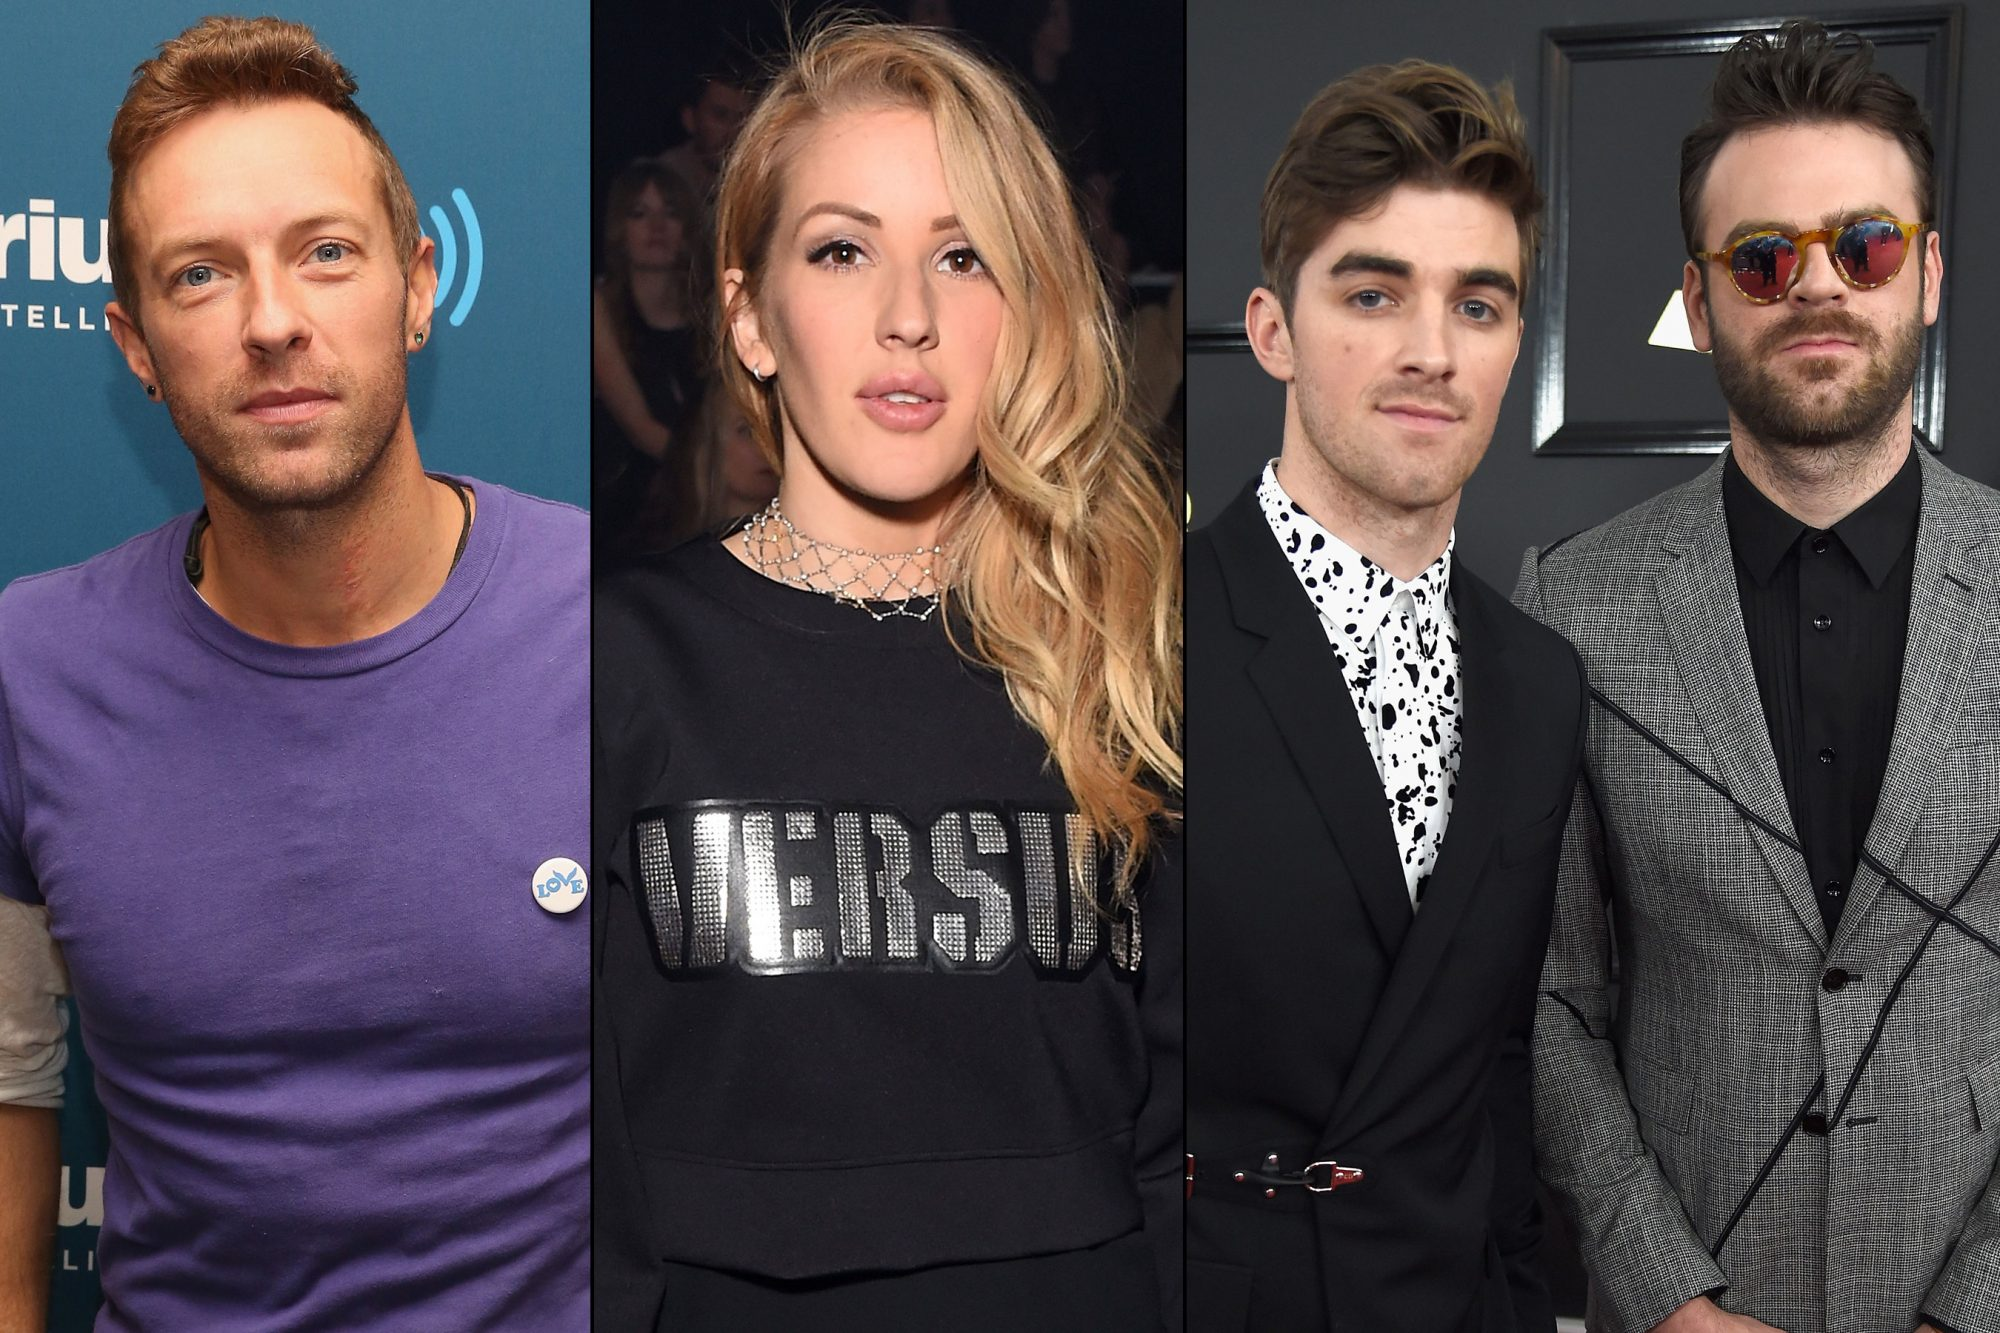 Coldplay, Ellie Goulding and the Chainsmokers